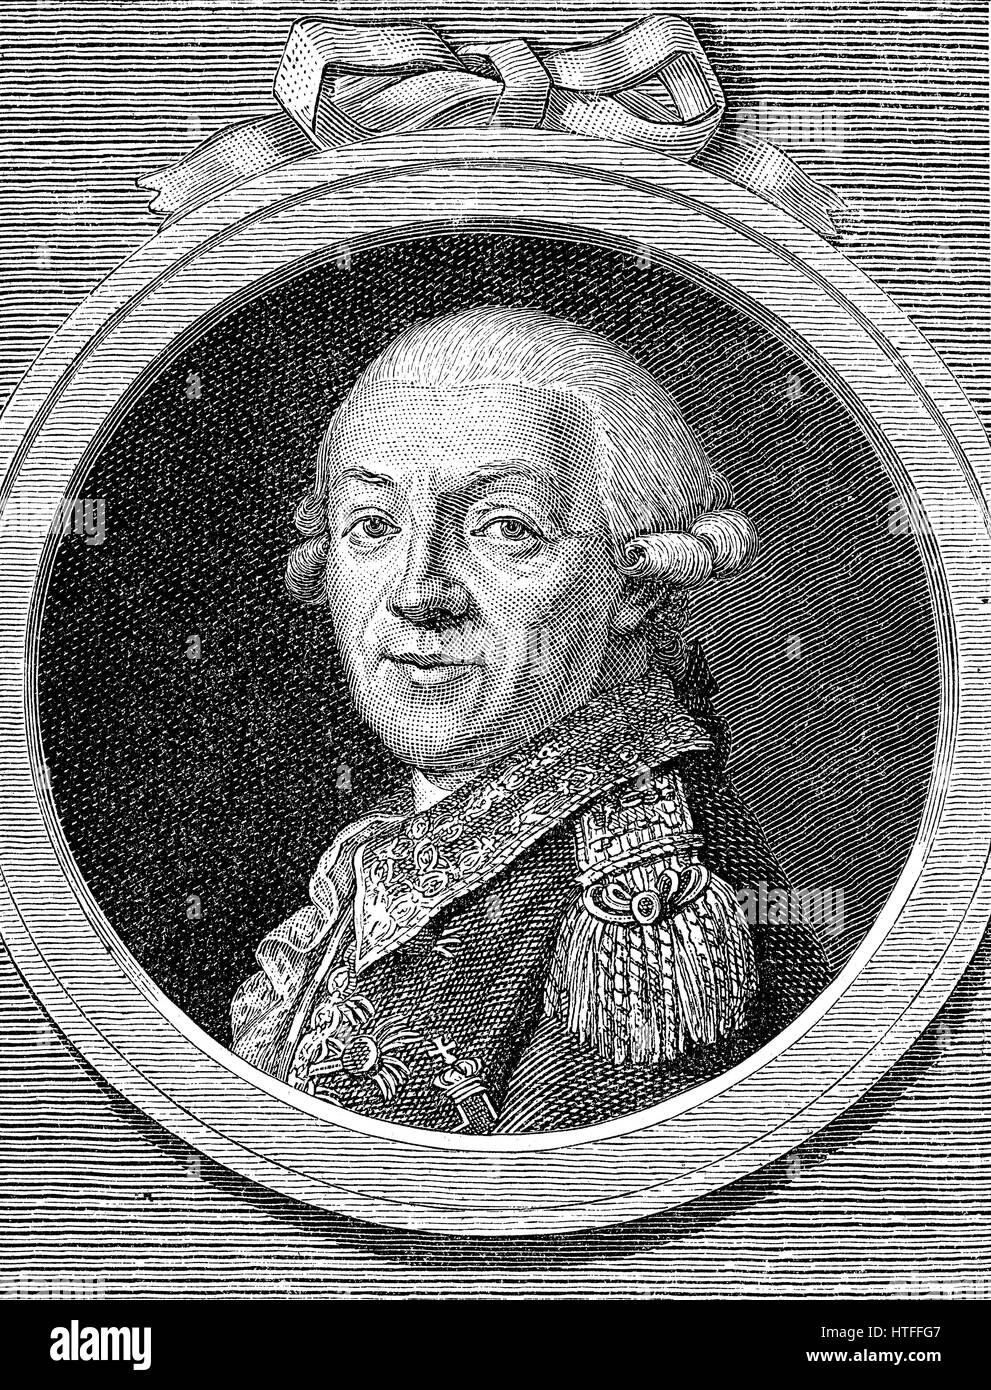 Johann Christoph von Woellner, 1732-1800, a Prussian pastor and politician under King Frederick William II - Stock Image